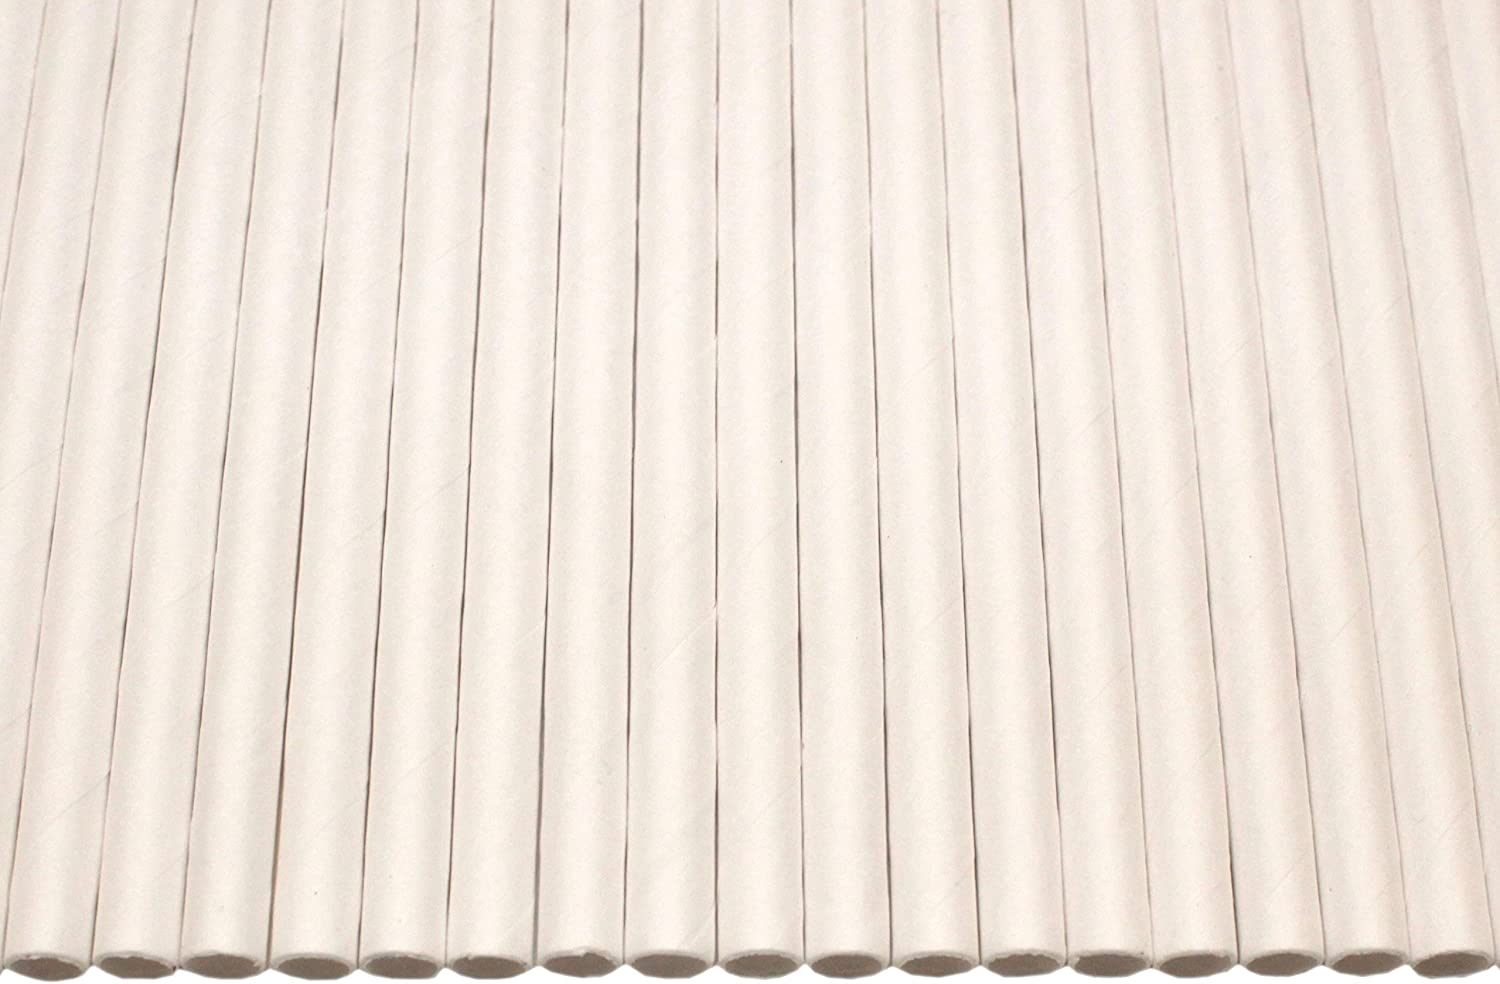 White Paper Straws Biodegradable//Eco-Friendly//Highly Durable//Food Safe//Suitable for All Occasions 6mm x 200mm - Pack Size 75